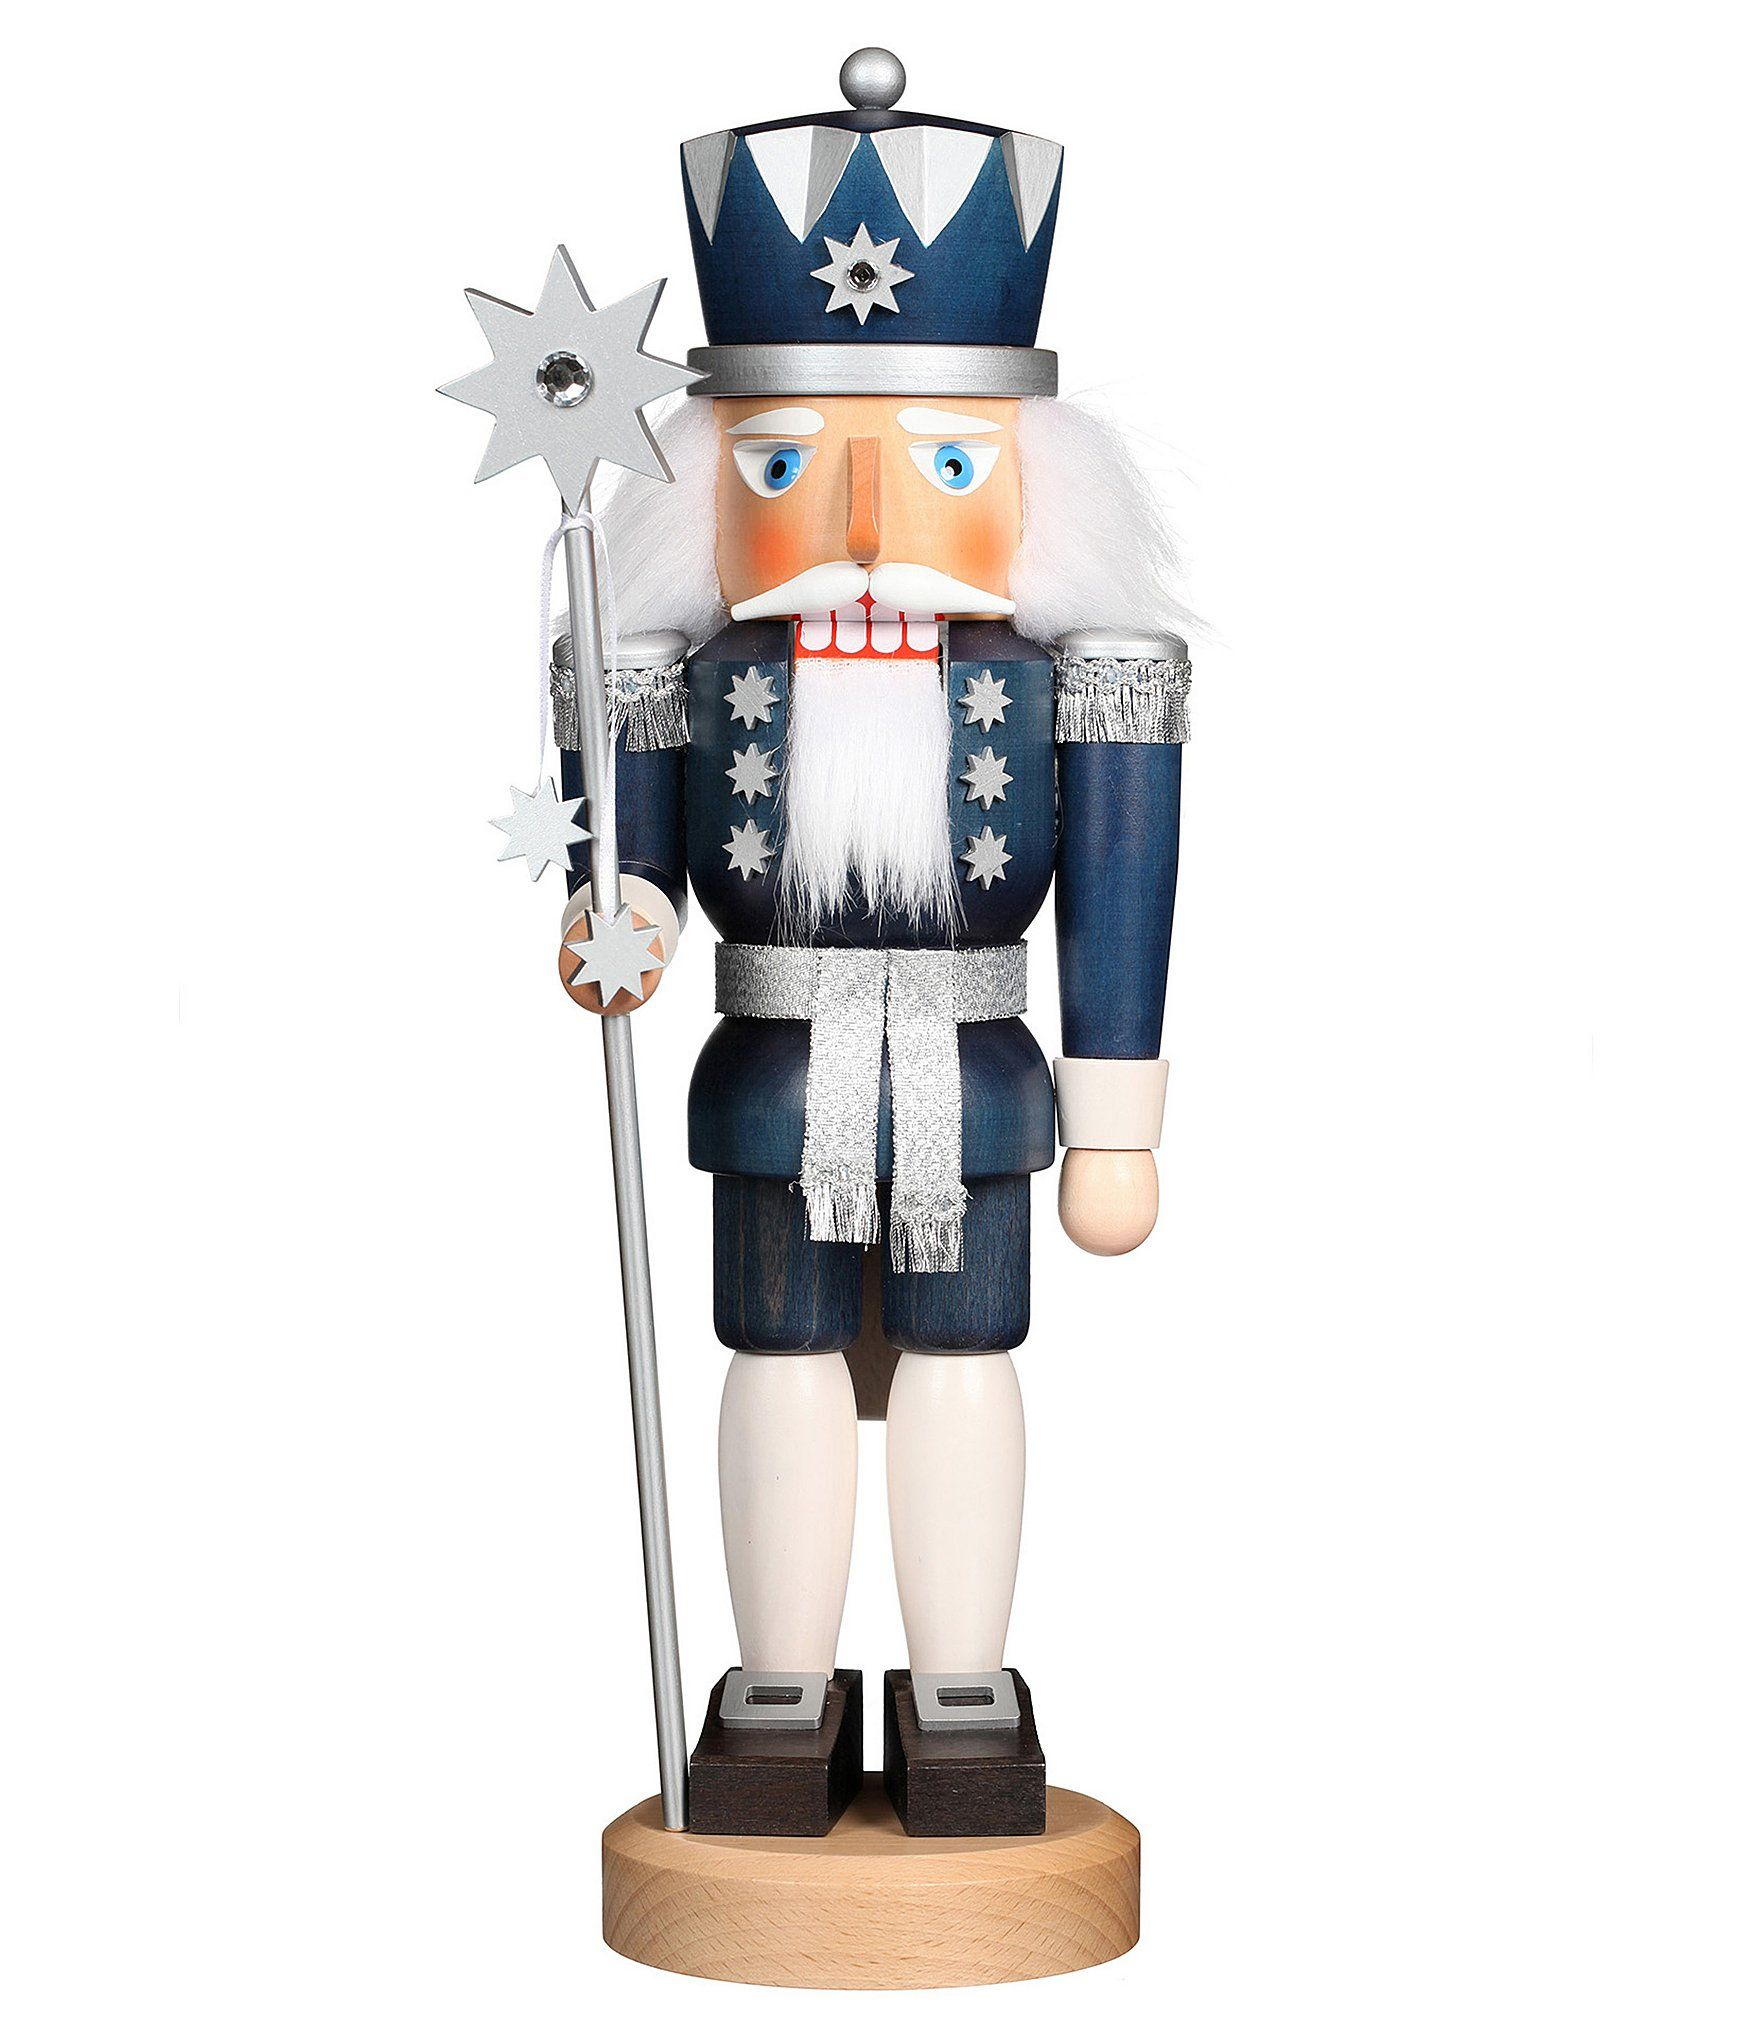 From Christian Ulbricht, this nutcracker features:Hand-painted wood finish so no two are exactly alikeKing of stars nutcracker wearing a night blue jacket studded with silver stars and a sparking belt100% authentic German Erzgebirge handcraftApprox.15.2